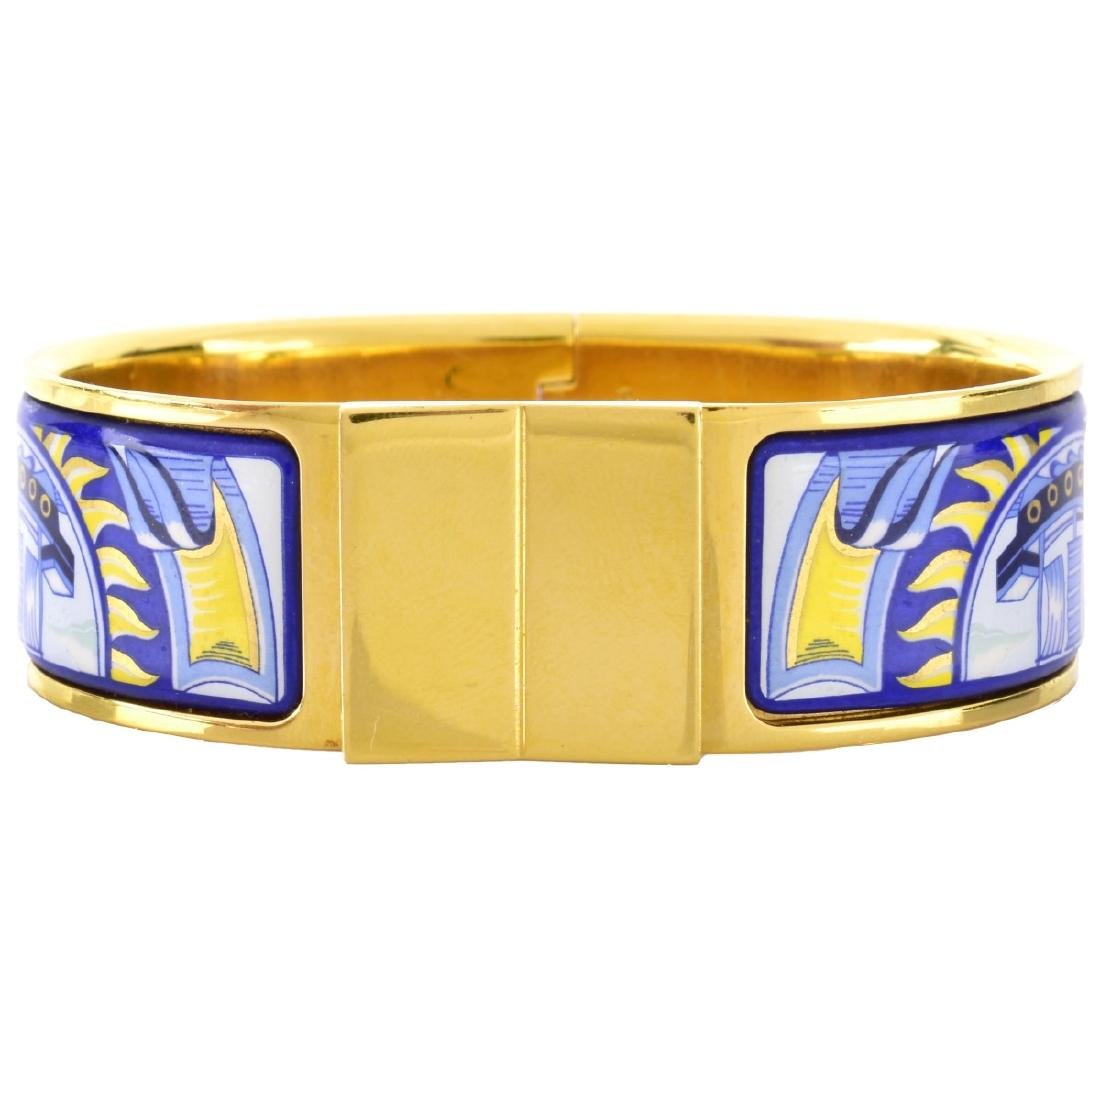 Hermes Gold Plate and Enamel Cuff Bangle